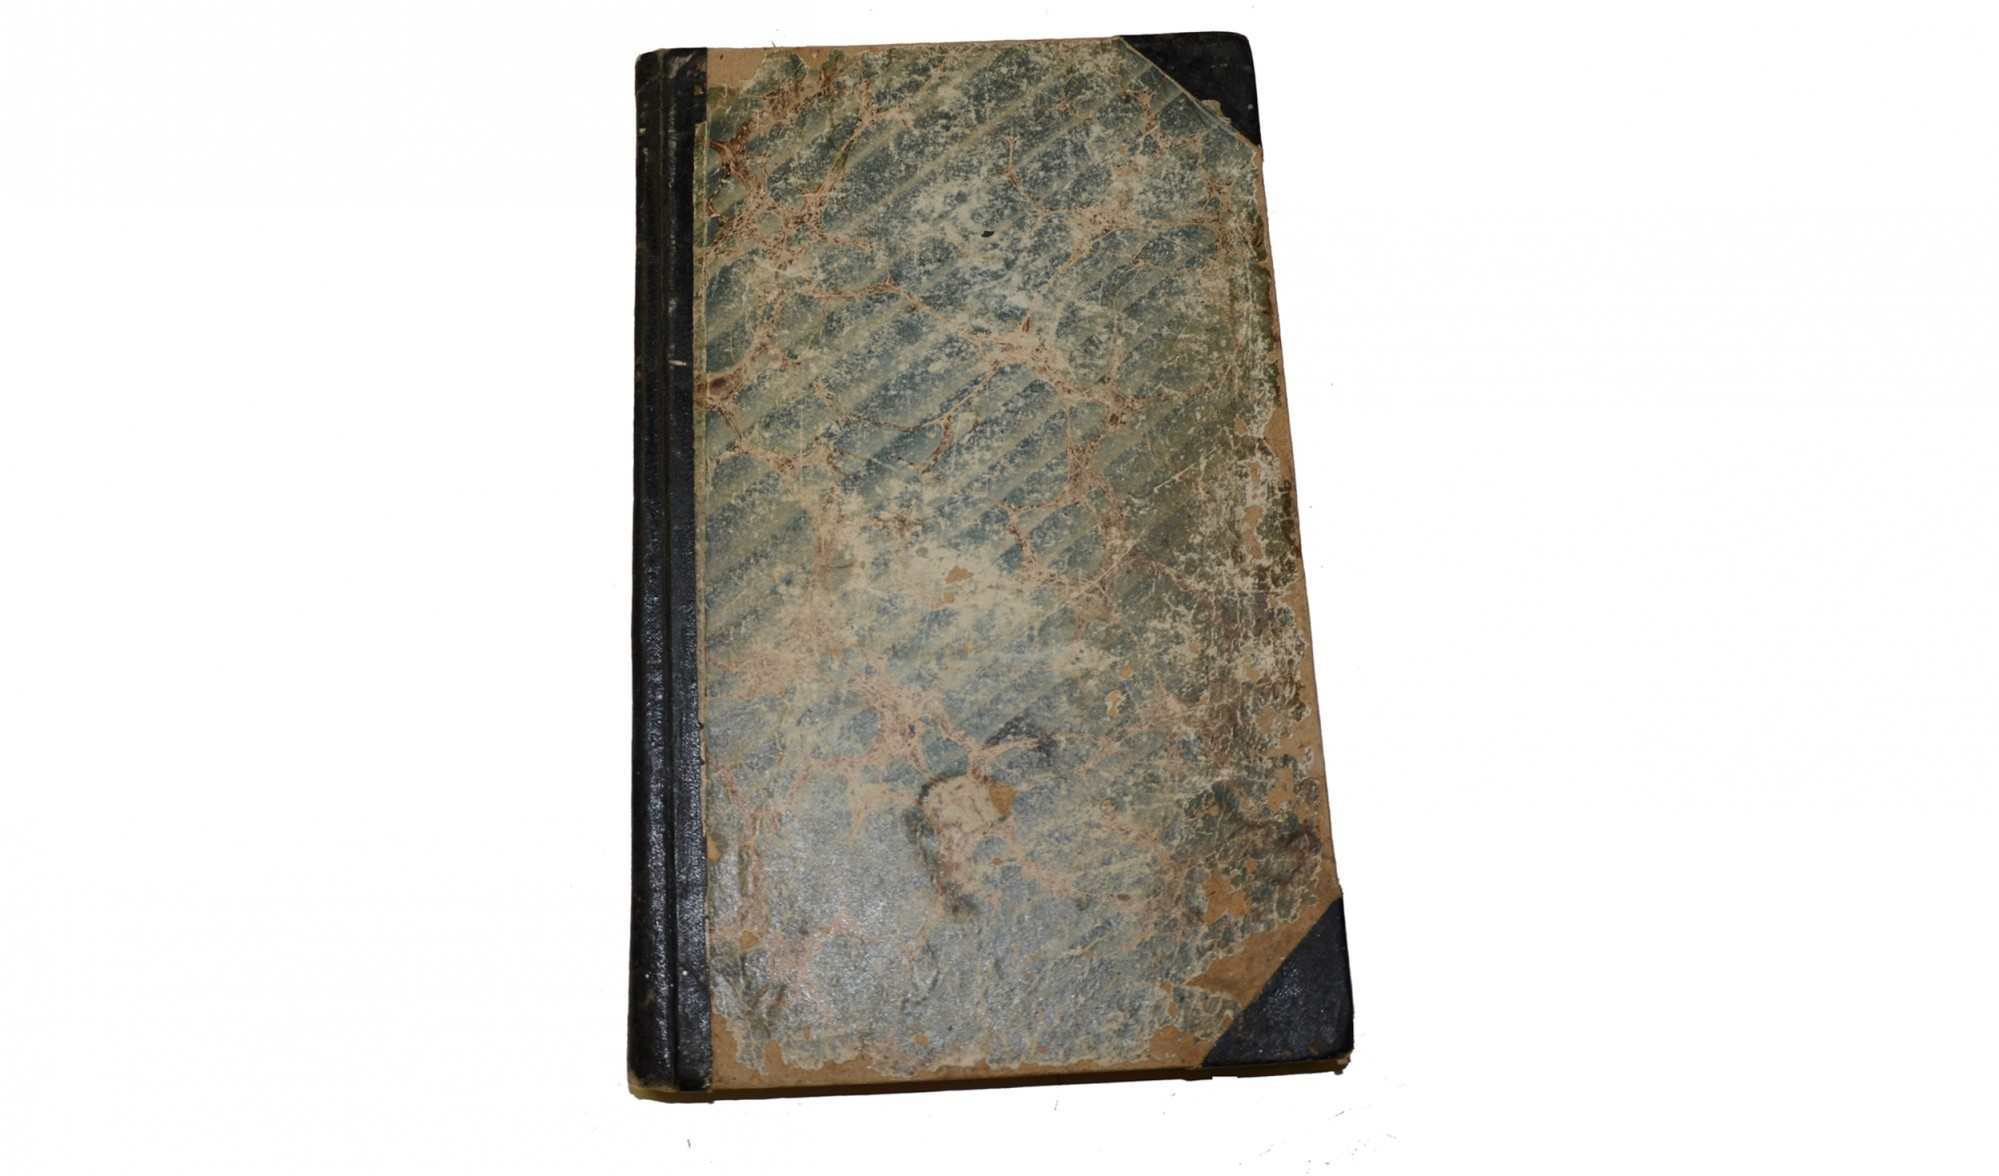 CIVIL WAR ACCOUNT BOOK OF WILLIAM DEOHL, BERRYVILLE, VIRGINIA, 1861-1863